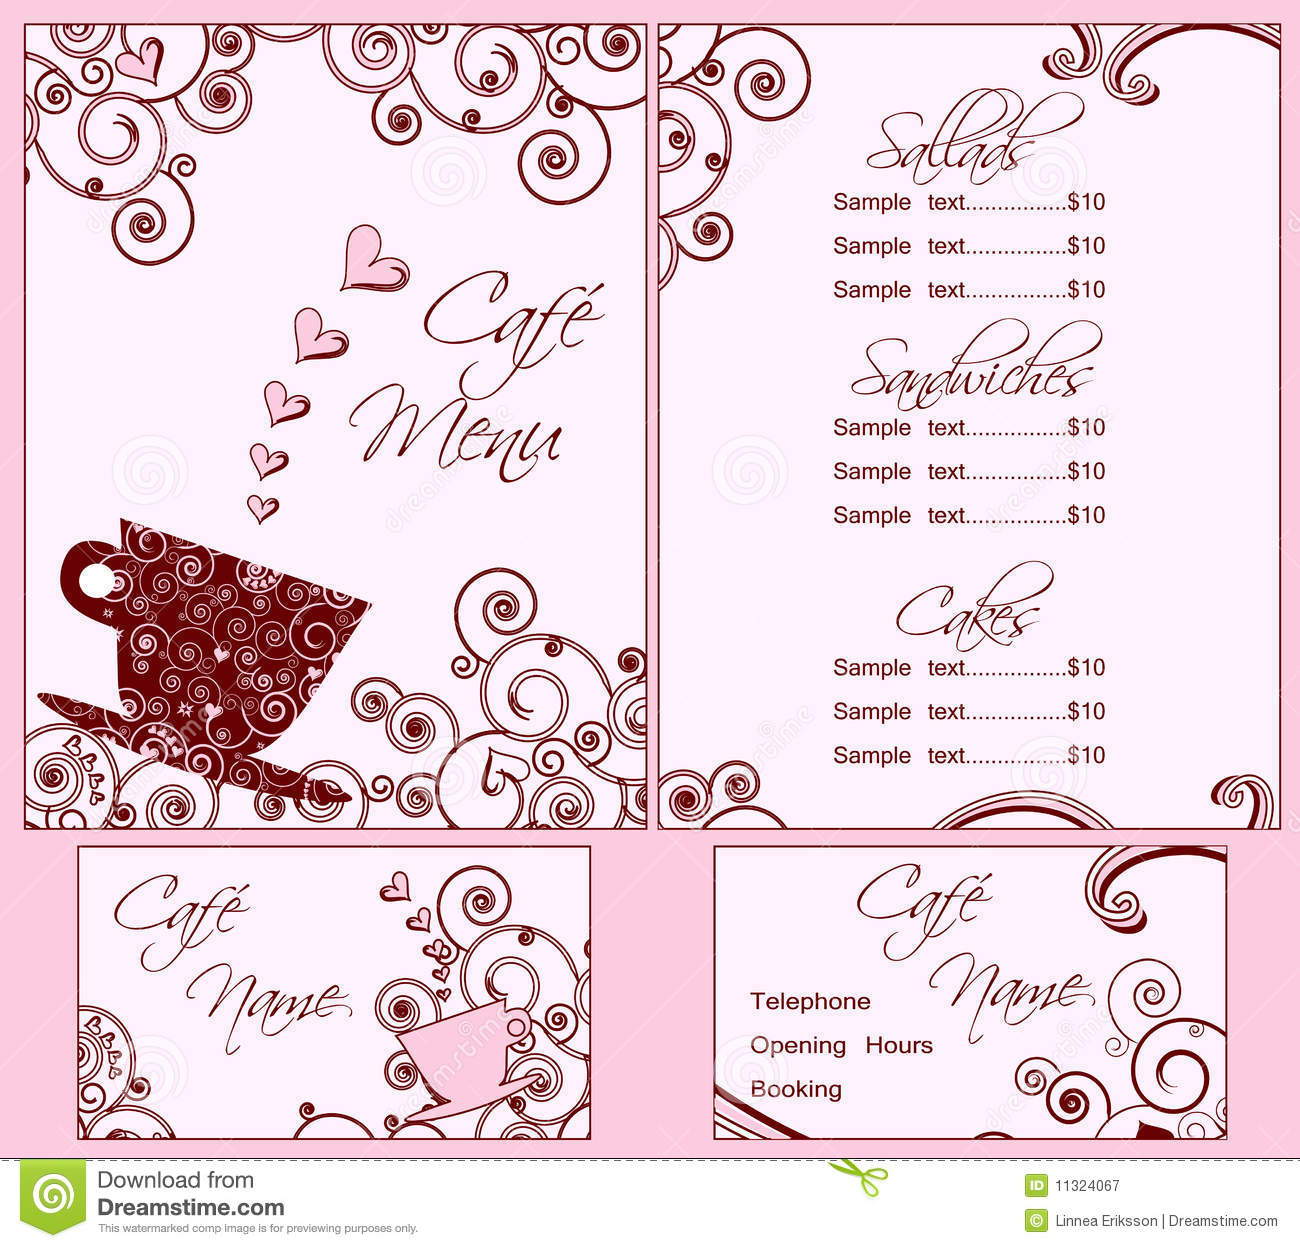 cute pink cafe menu and business card templates stock vector image 11324067. Black Bedroom Furniture Sets. Home Design Ideas